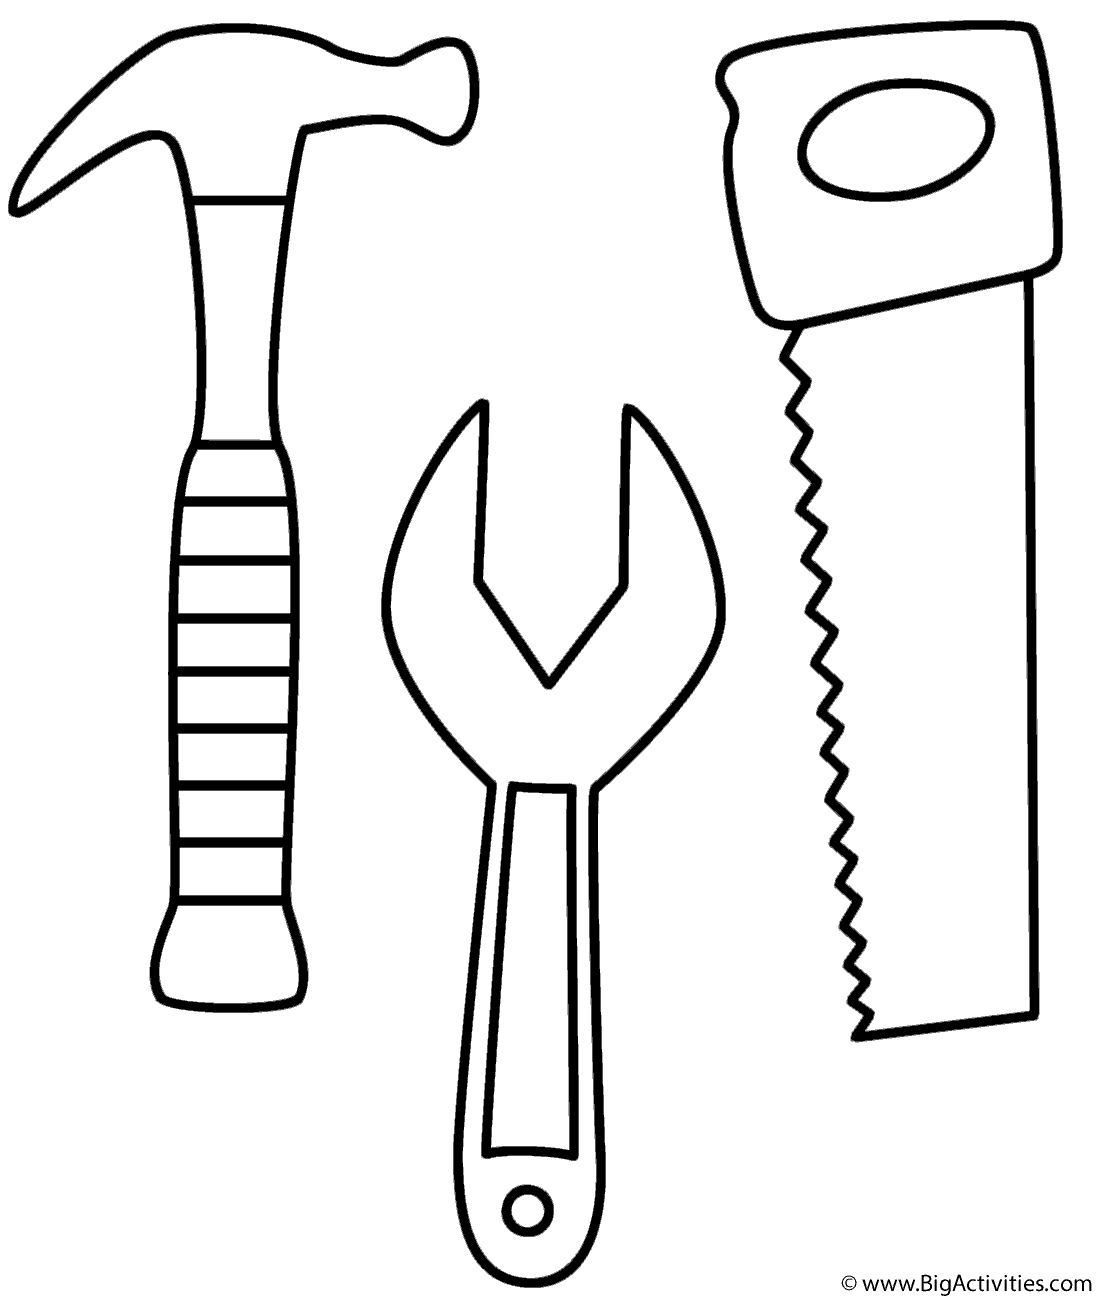 Hammer, Saw and Wrench - Coloring Page (Labor Day)